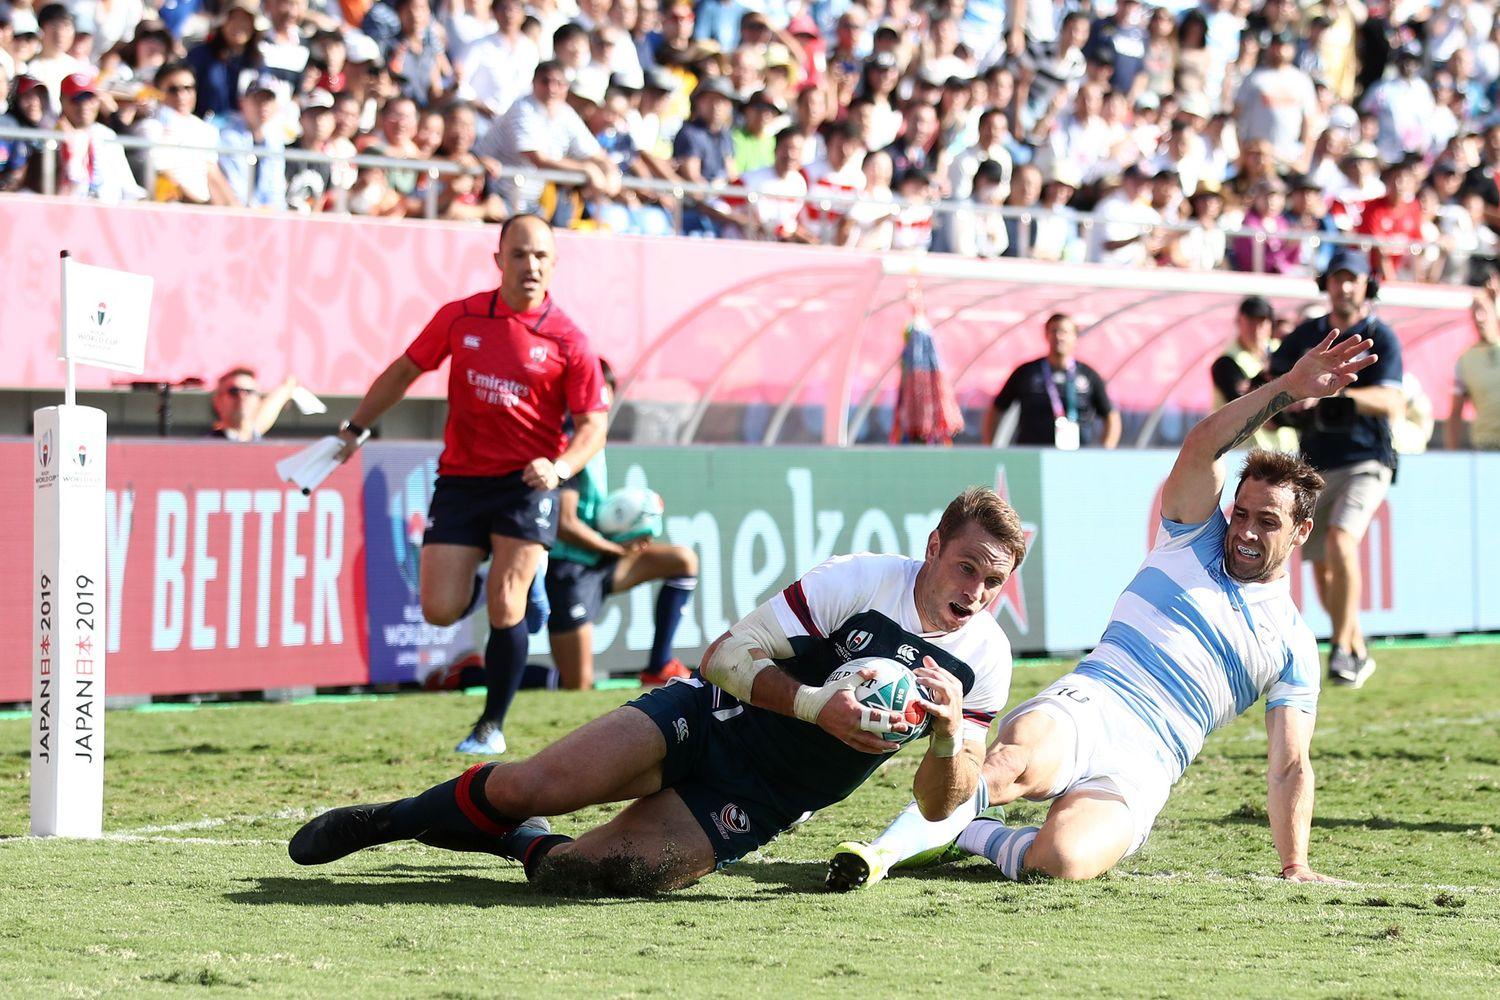 Argentina v USA - Rugby World Cup 2019: Pool C